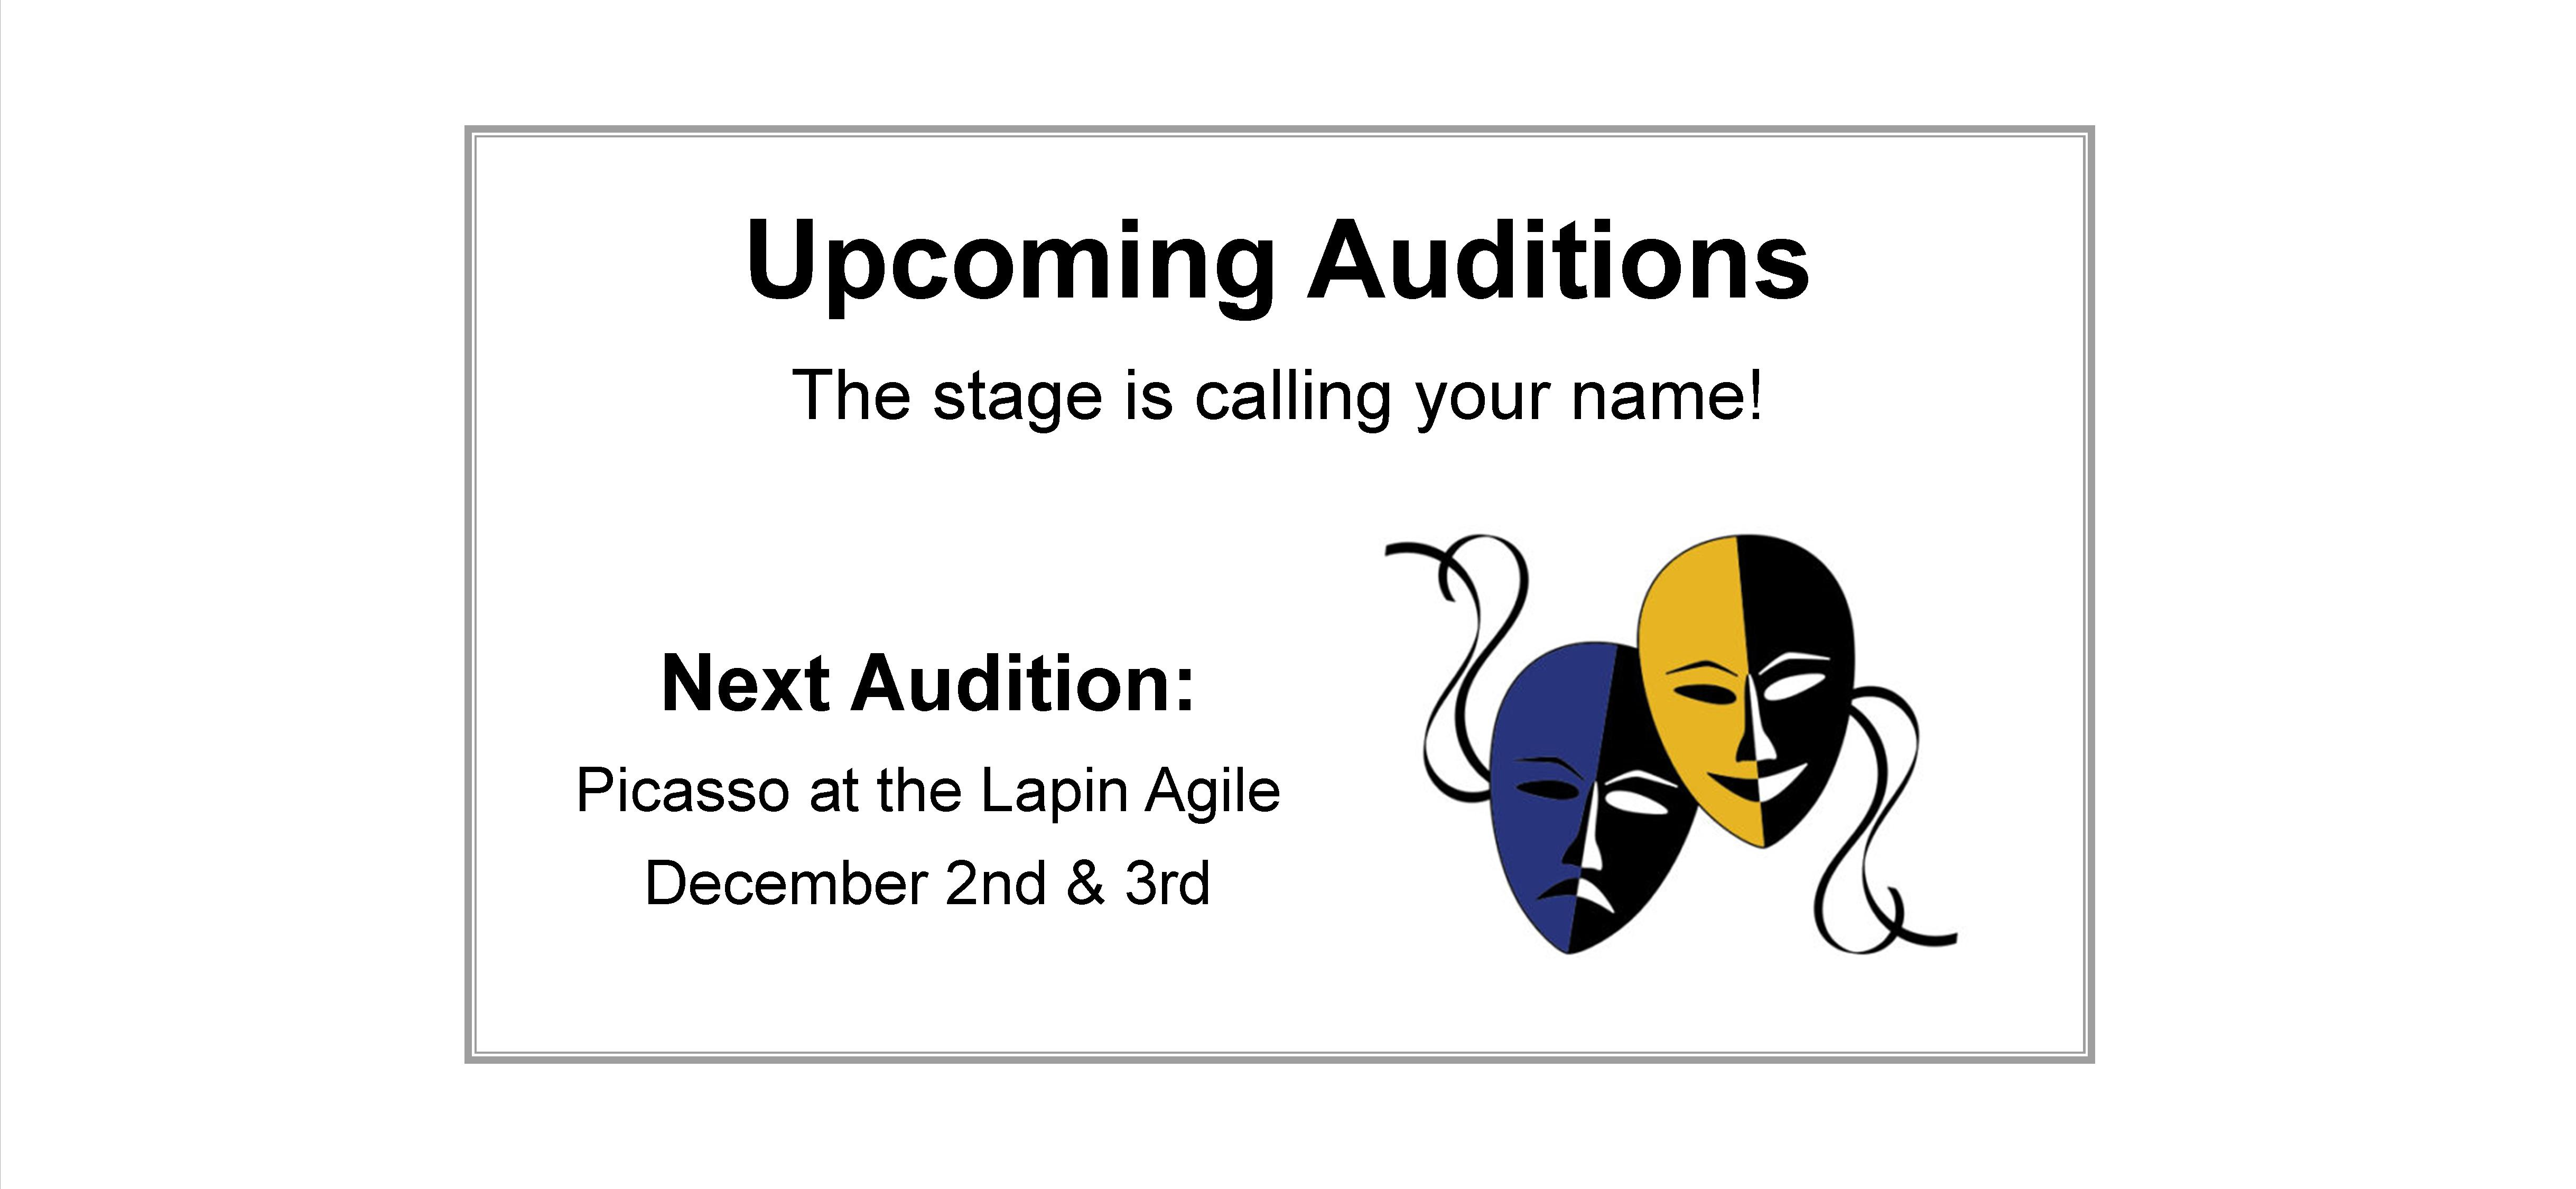 Picasso at Lapin Agile Auditions at Lionheart Theatre in December